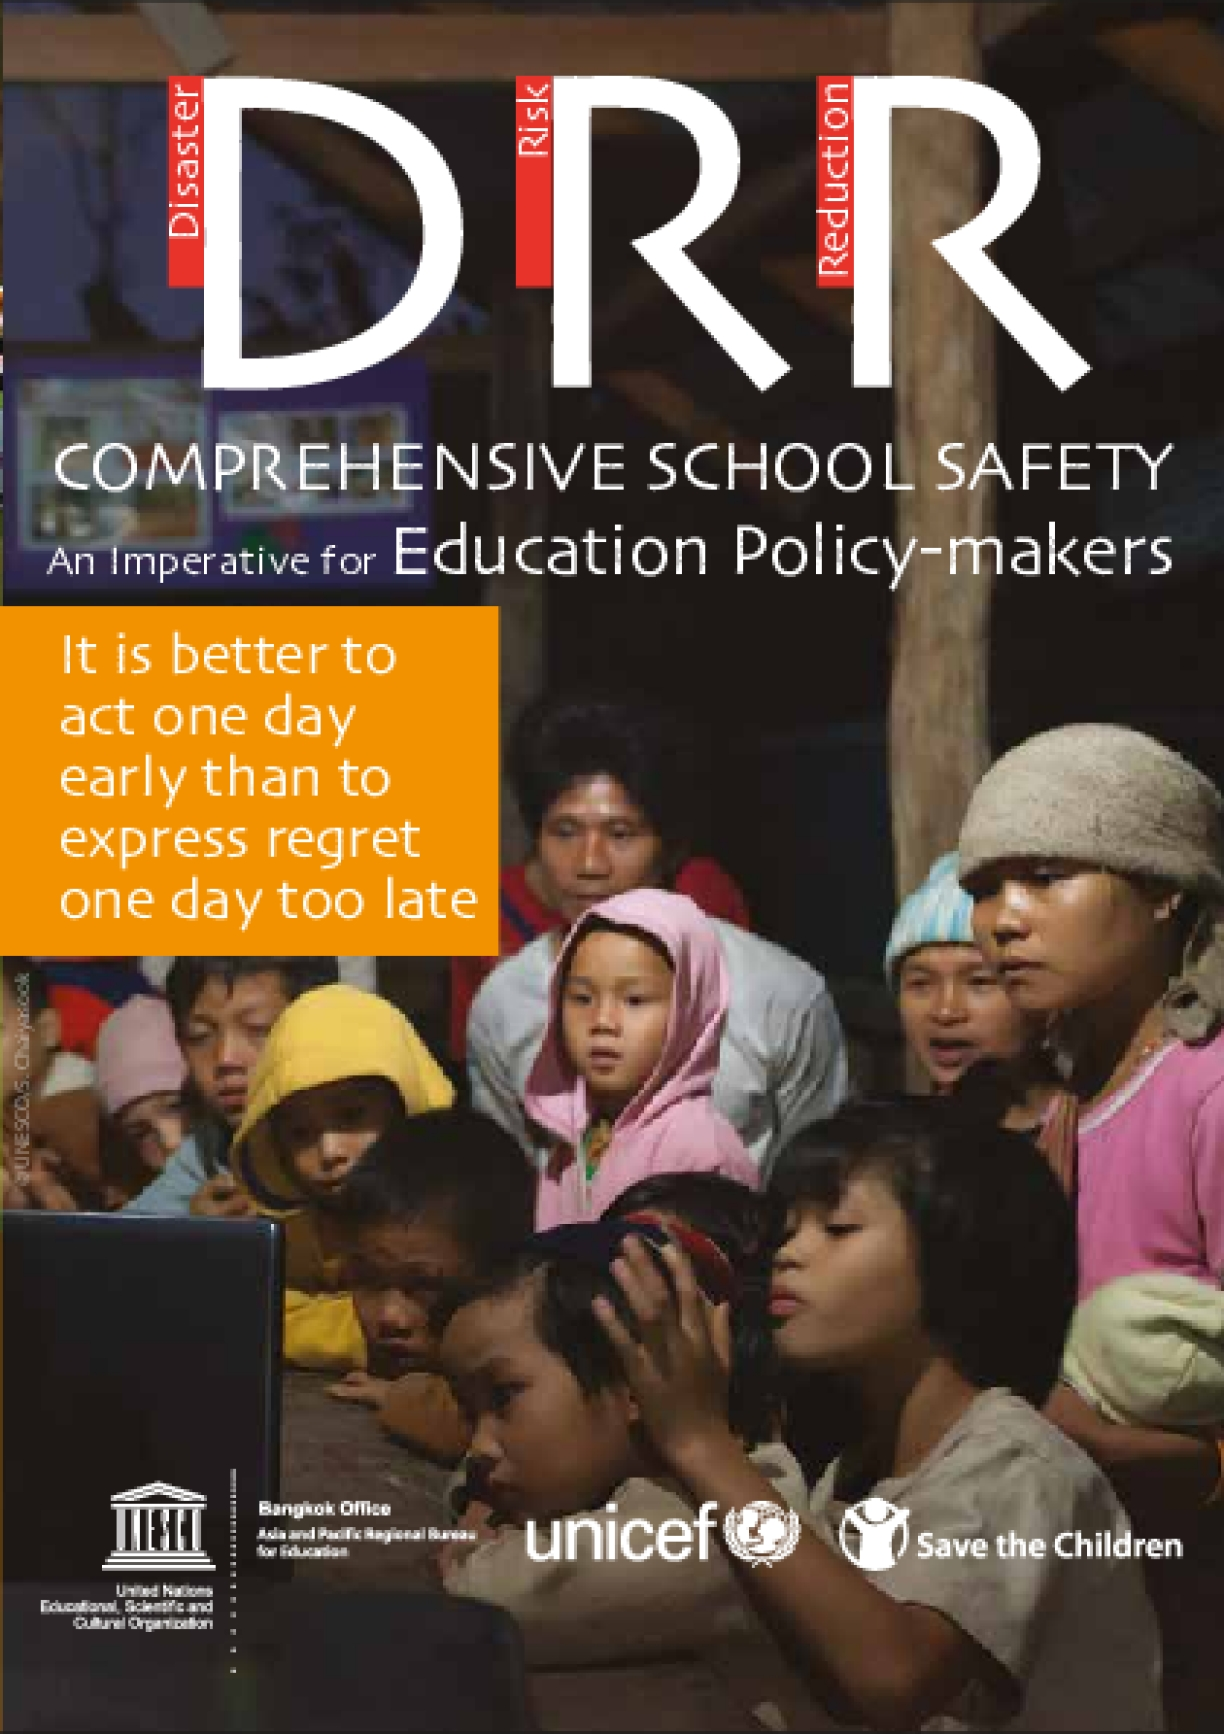 DRR Comprehensive School Safety An Imperative for Educatoin Policy Makers